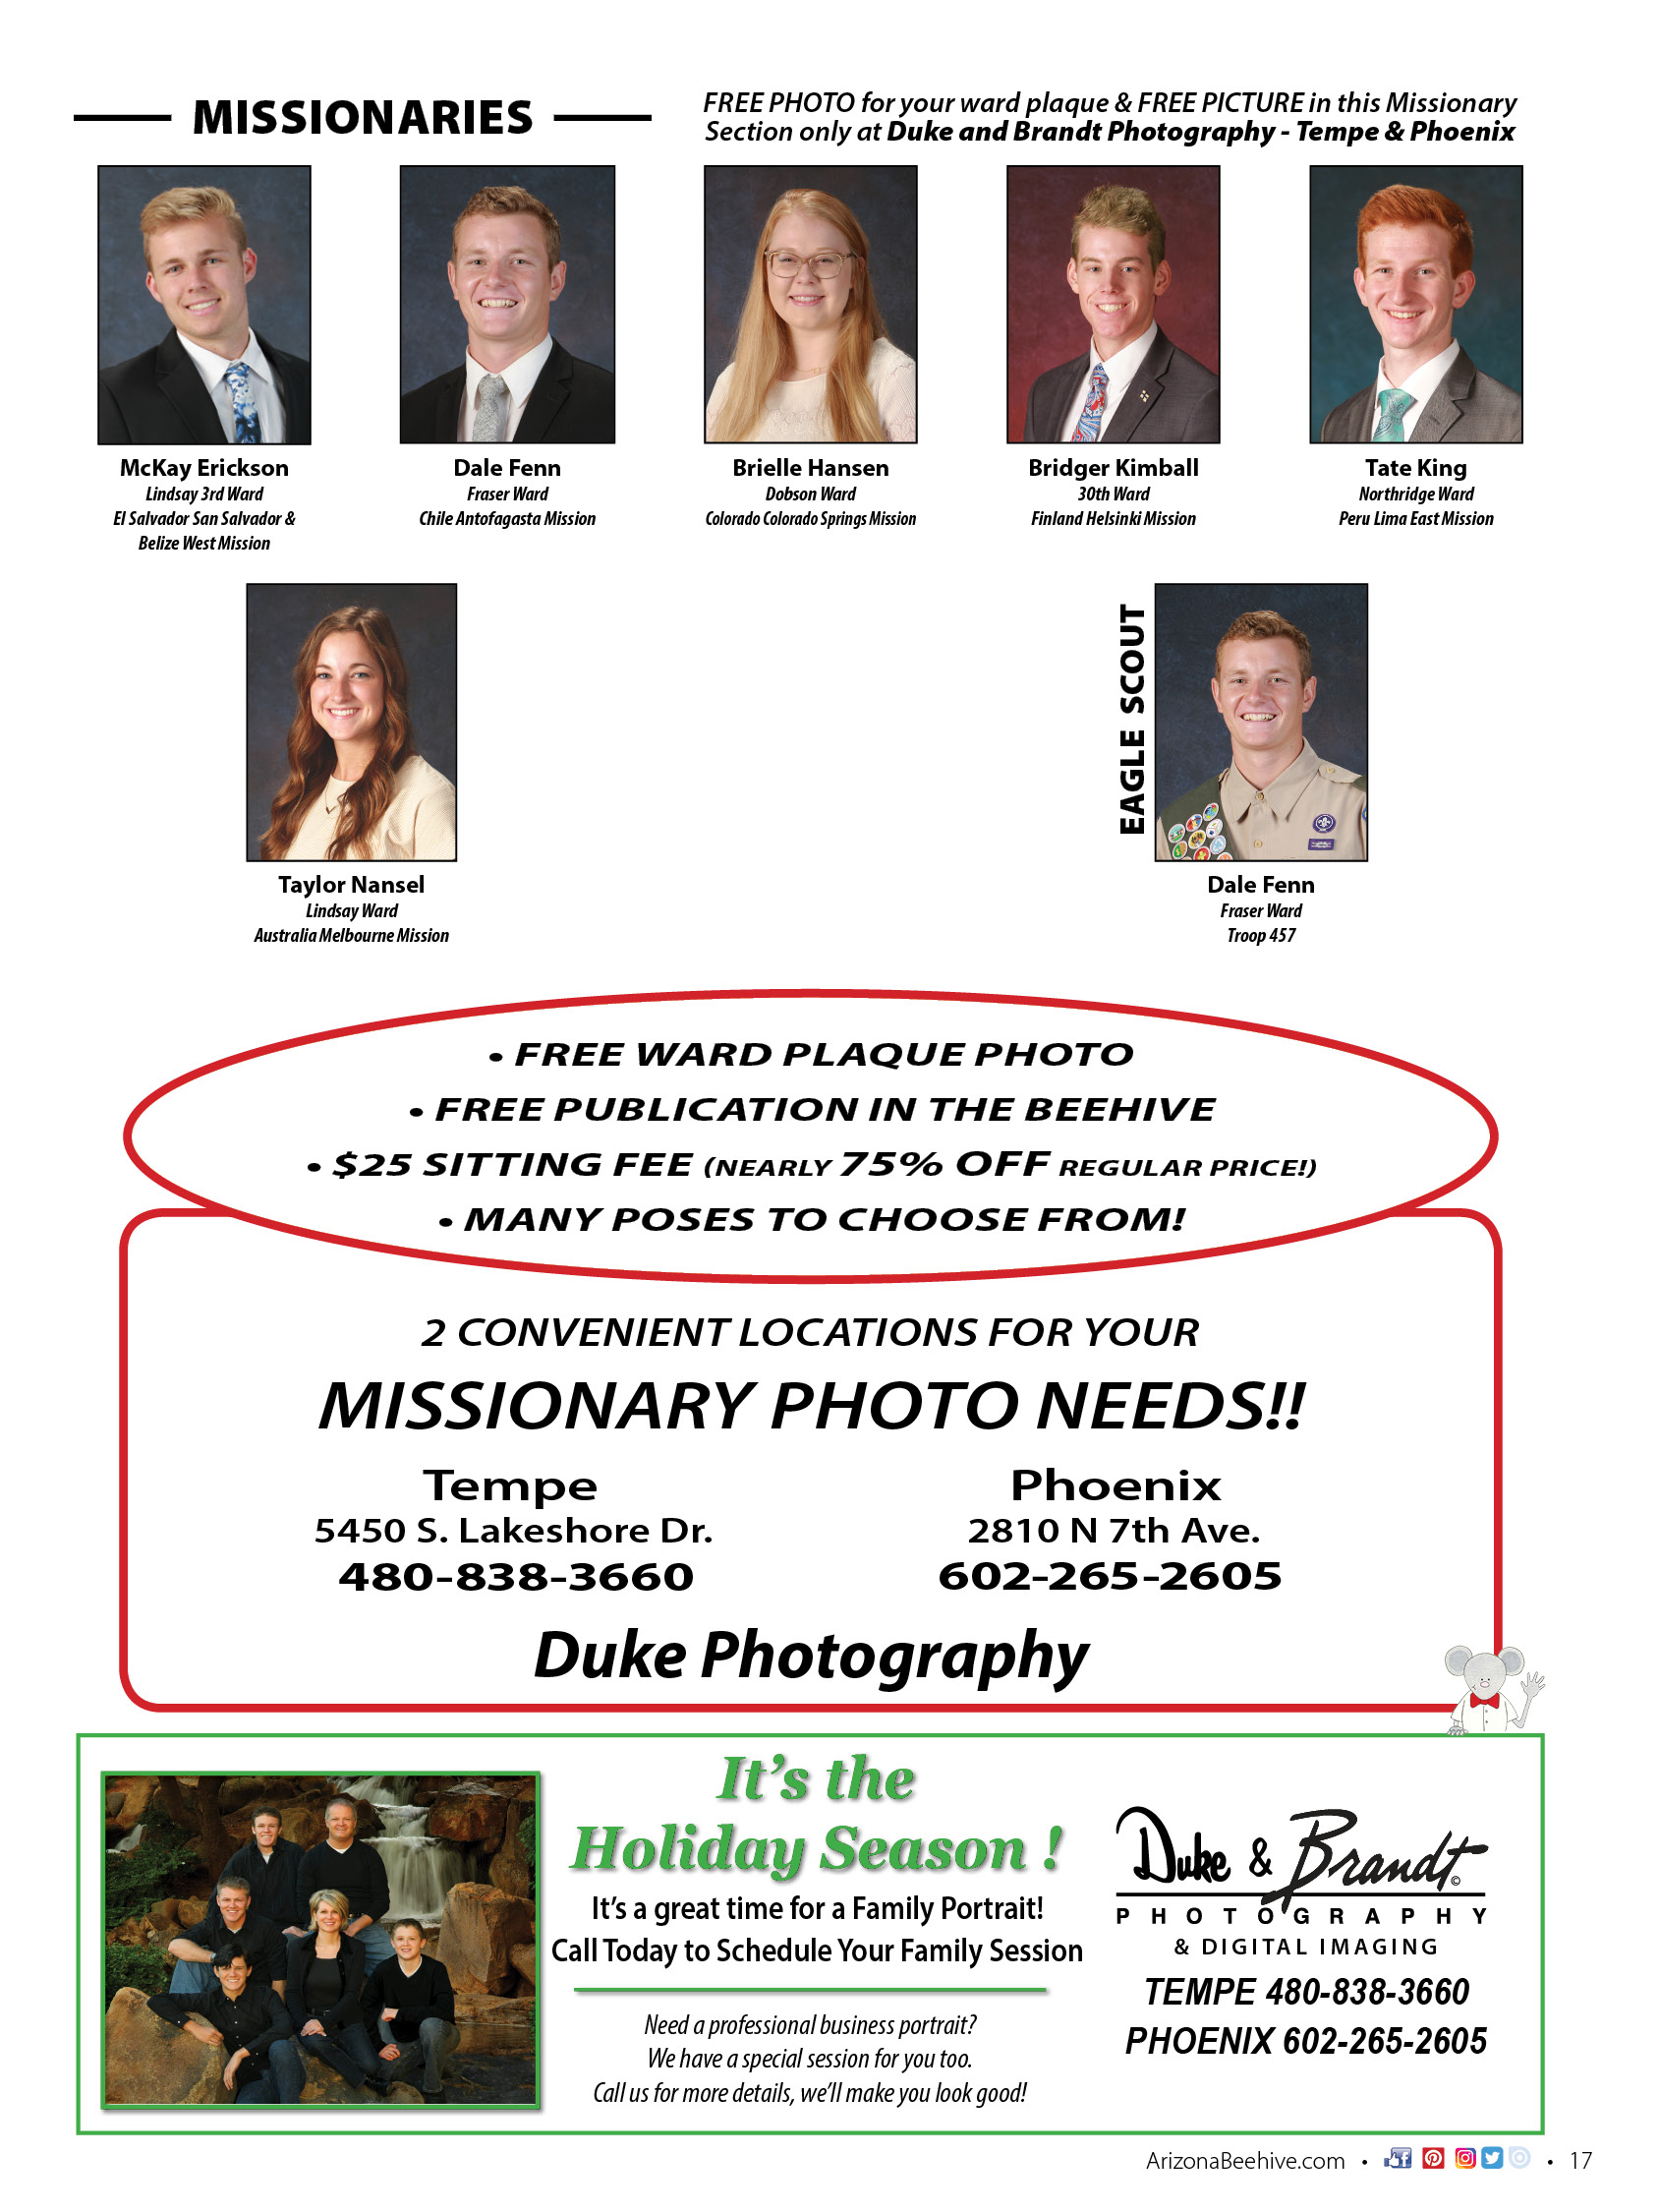 Dec 2018 Jan 2019 Missionary Page